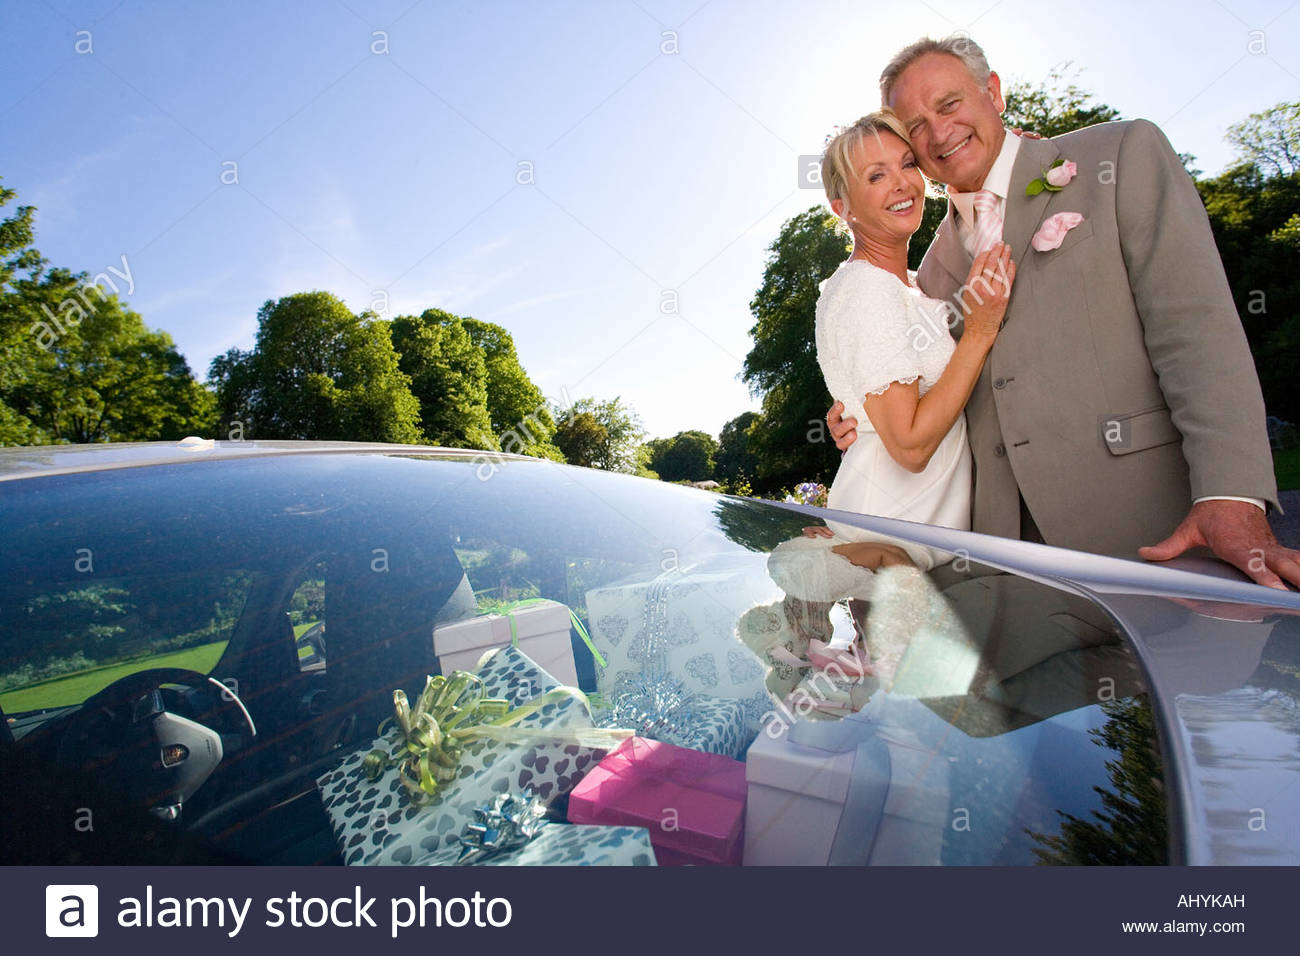 Newly Married 60 S Couple Standing Behind Car Full Of Wedding Gifts